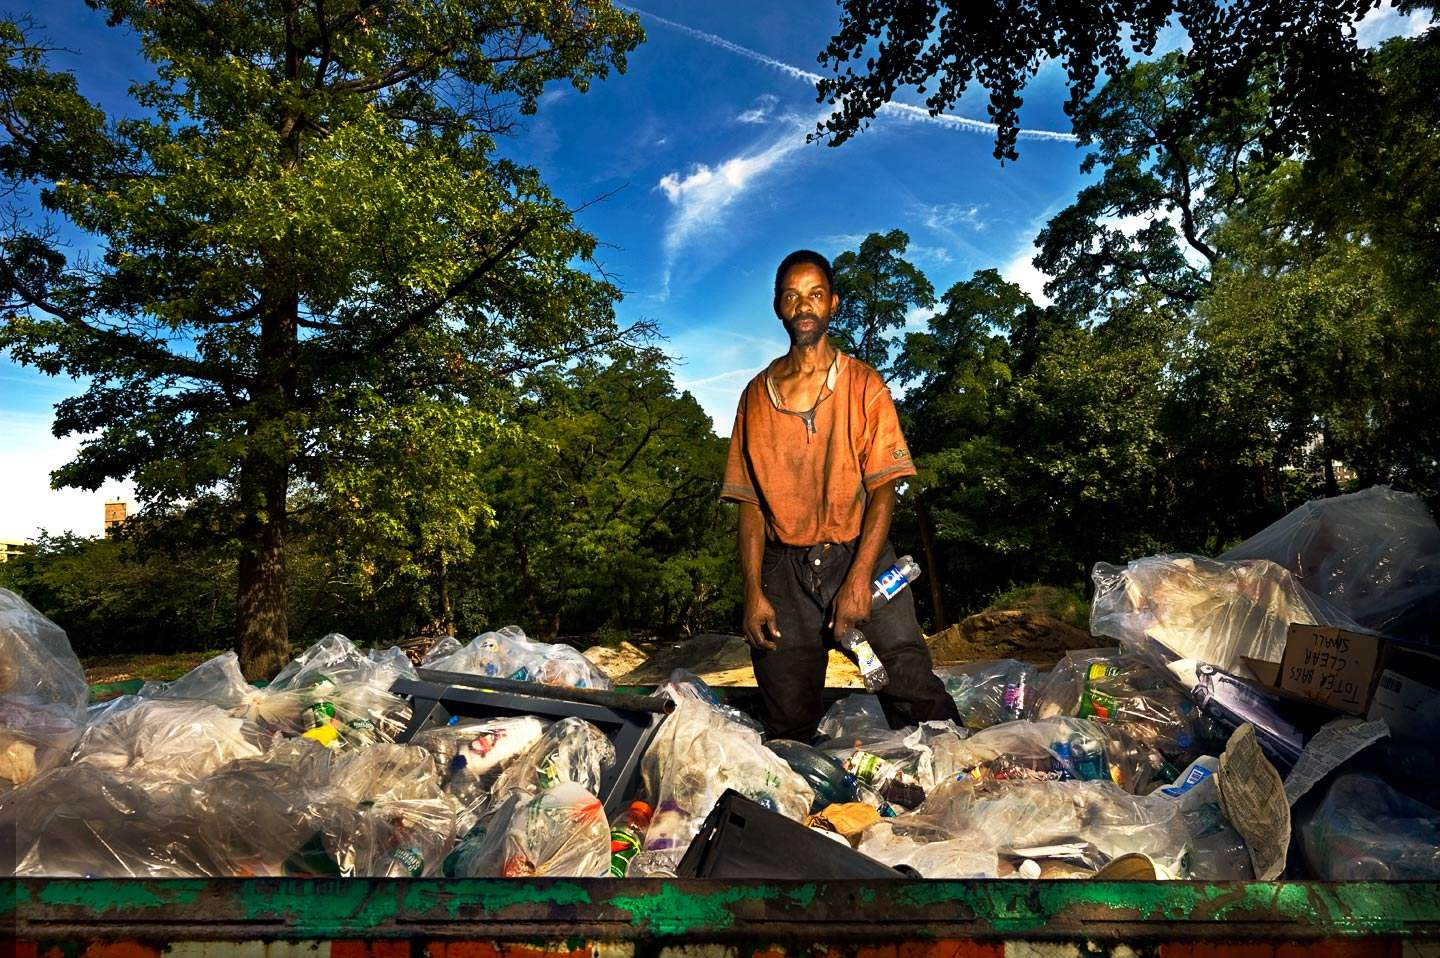 Ernest Phillips earning money in America by collecting bottles from the trash in Central Park, NYC : On The Road : NY - Portrait Photographer Video, Architectural, Corporate Editorial Location Photography